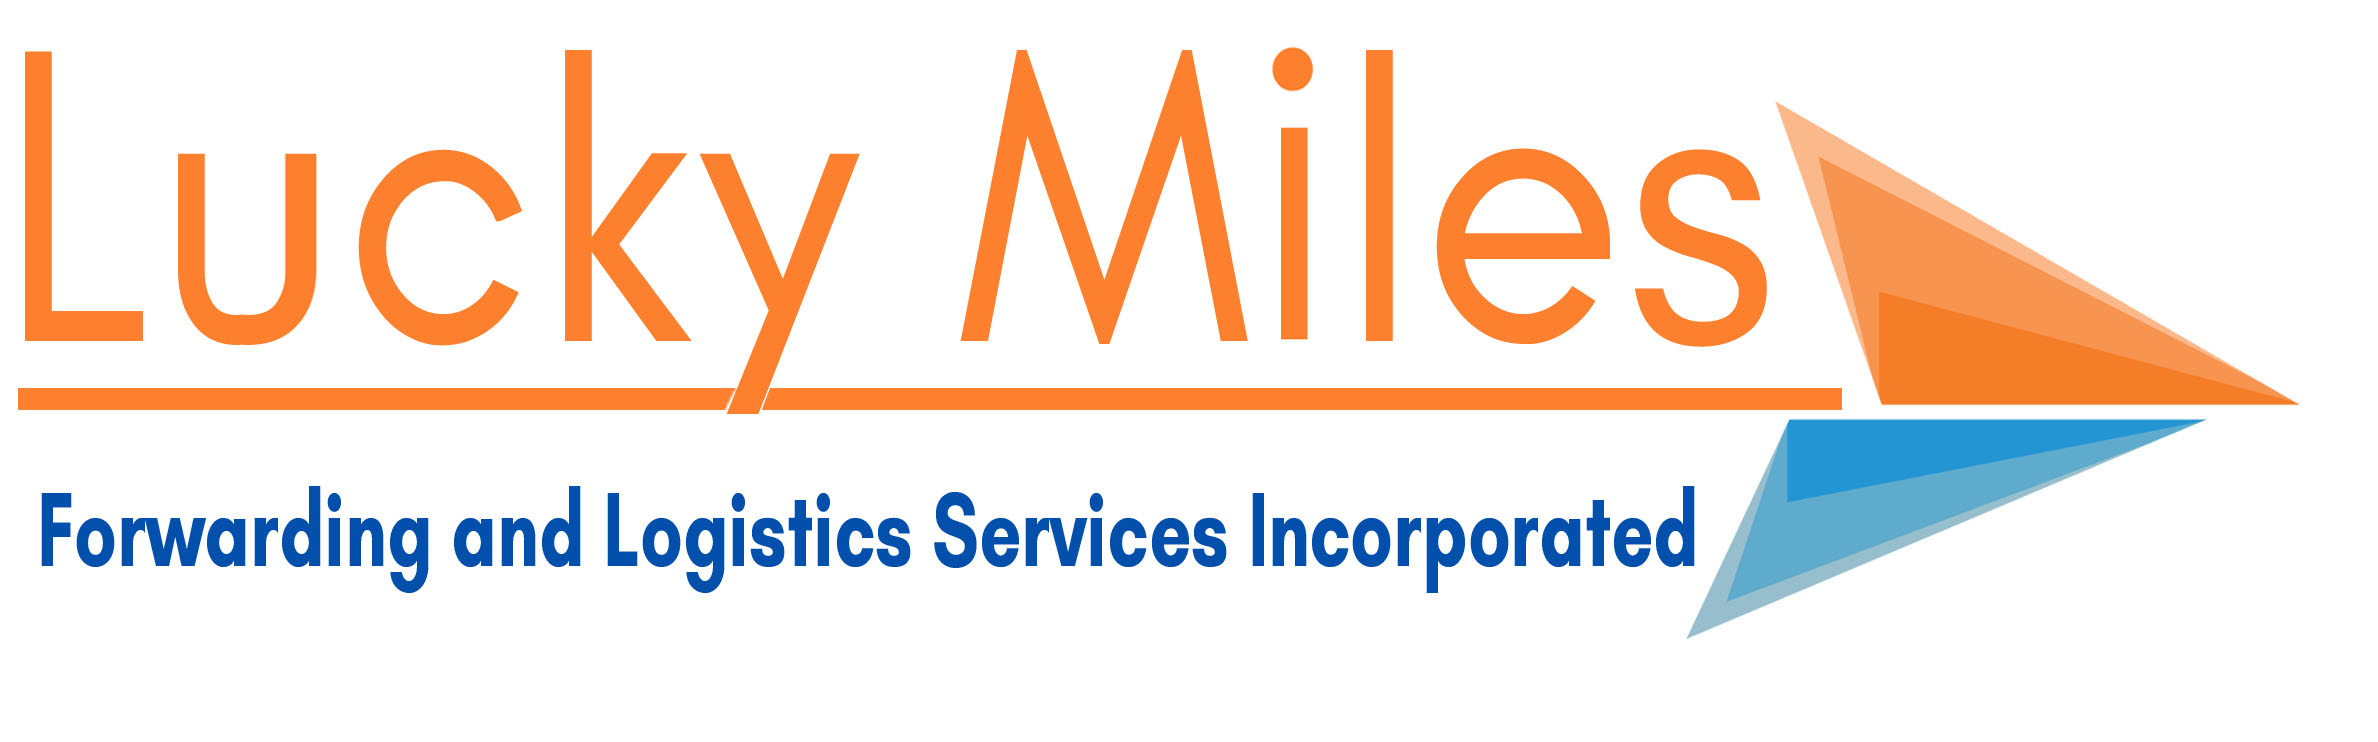 Lucky Miles Forwarding and Logistics Services